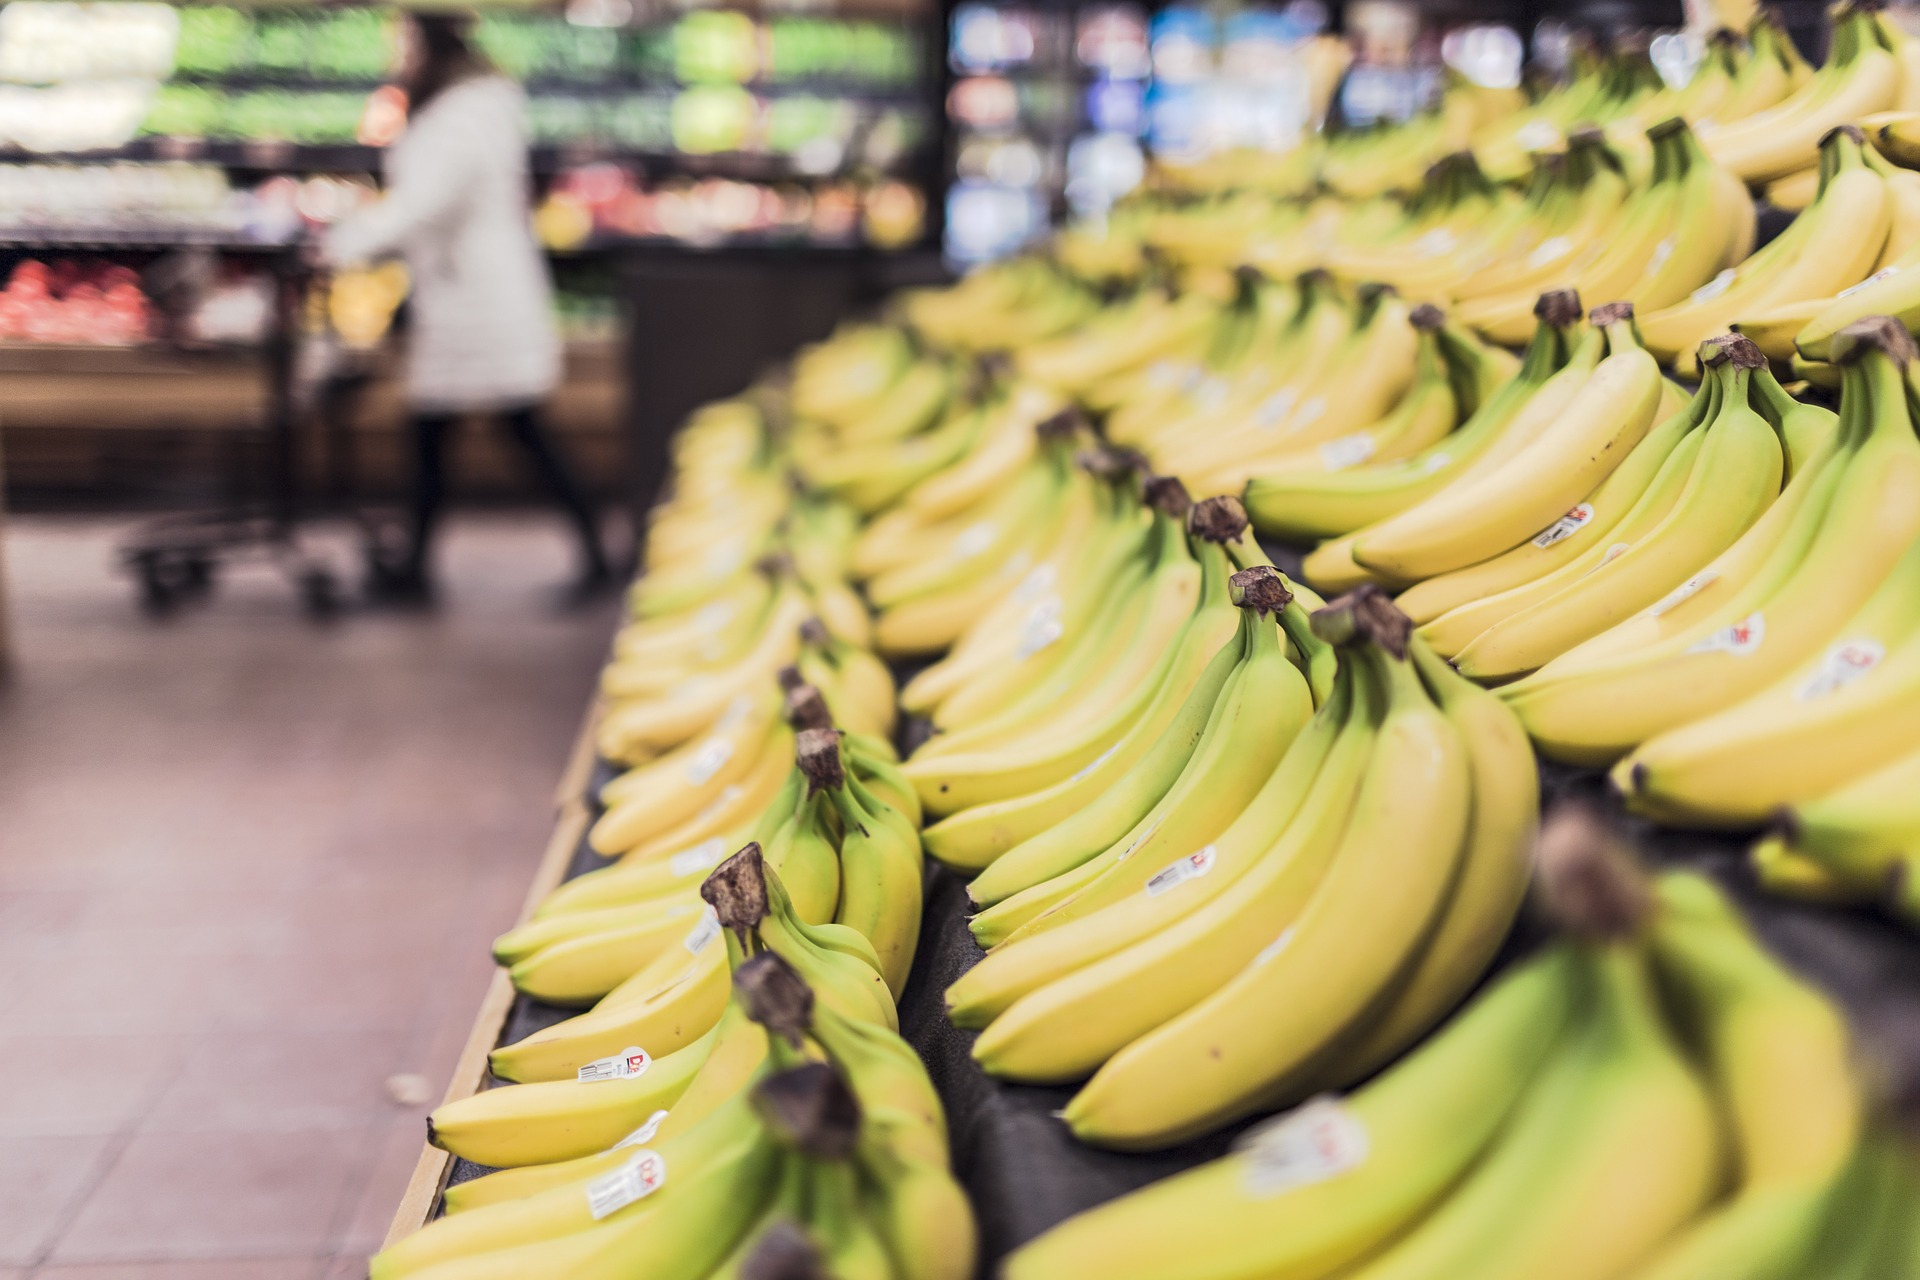 Top 5 Tips for Keeping a Low Grocery Bill + $10 Free in Groceries to Our Readers!